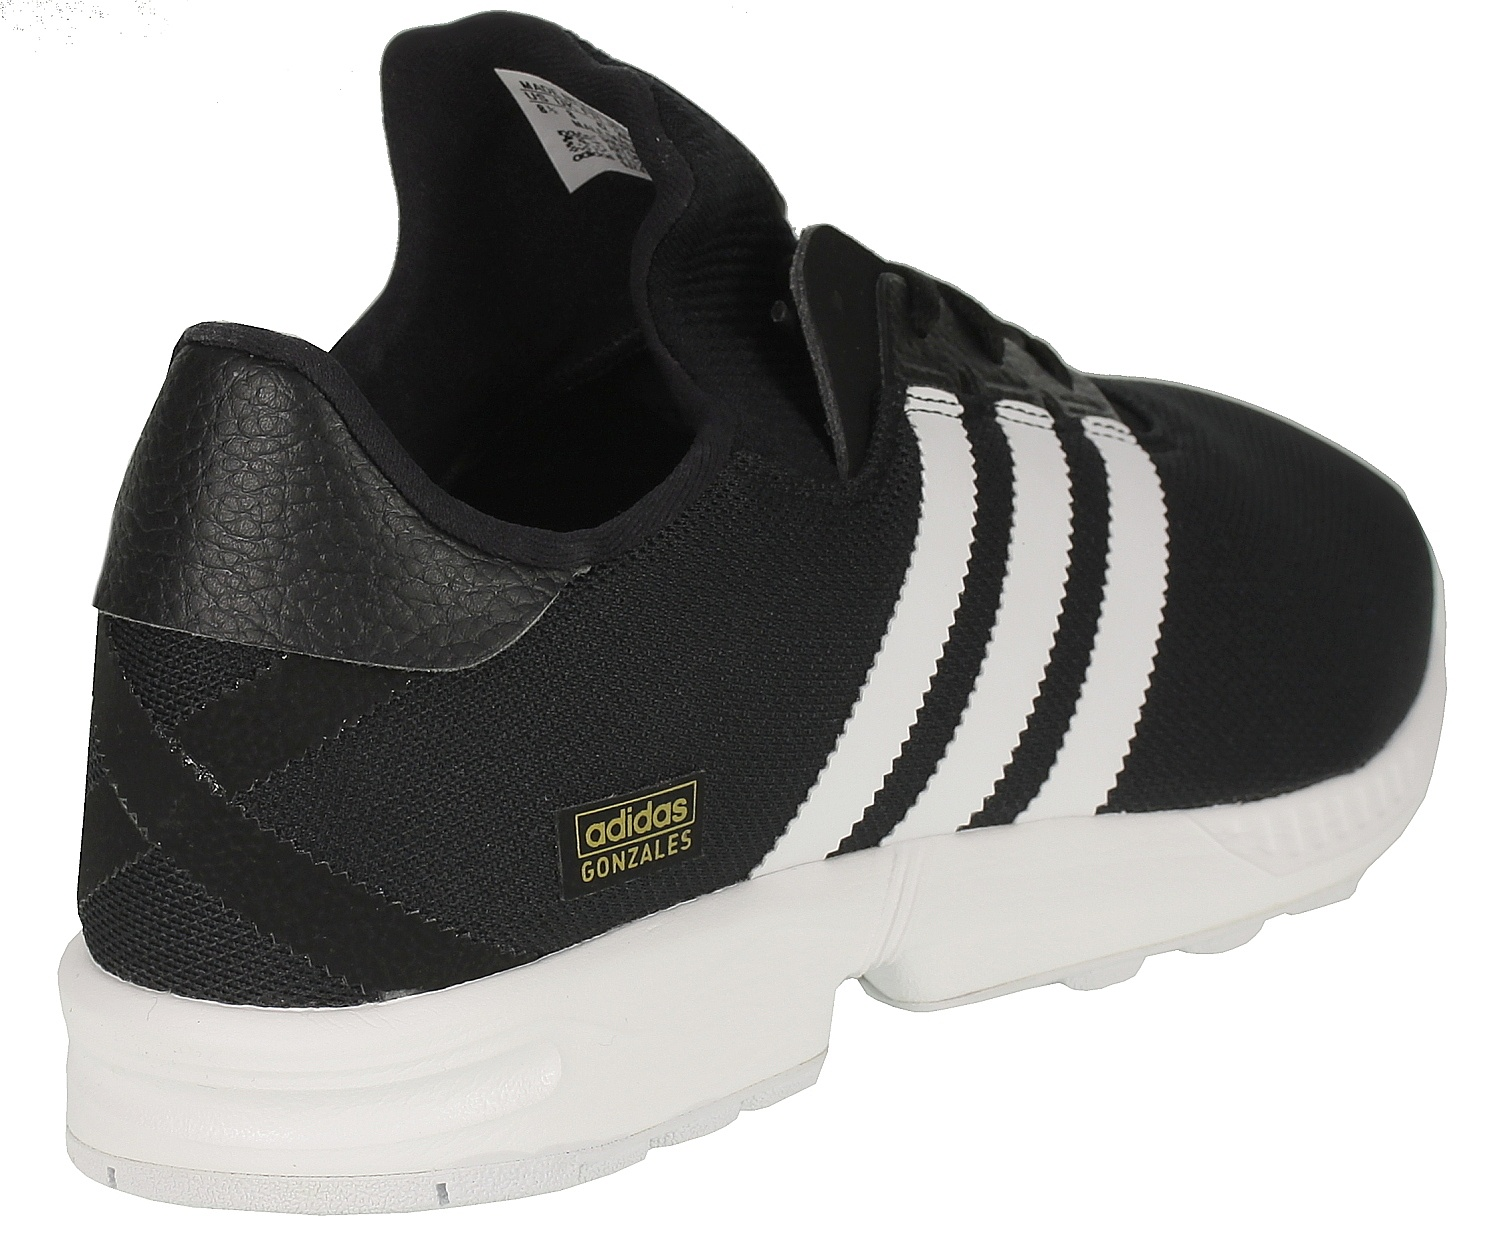 online store cb8de f2876 Yükle (1500x1249)shoes adidas Originals ZX Gonz - Core BlackRunning White  - Snowboard shop, skateshop - blackcomb-shop.eushoes adidas Originals ZX  Gonz ...